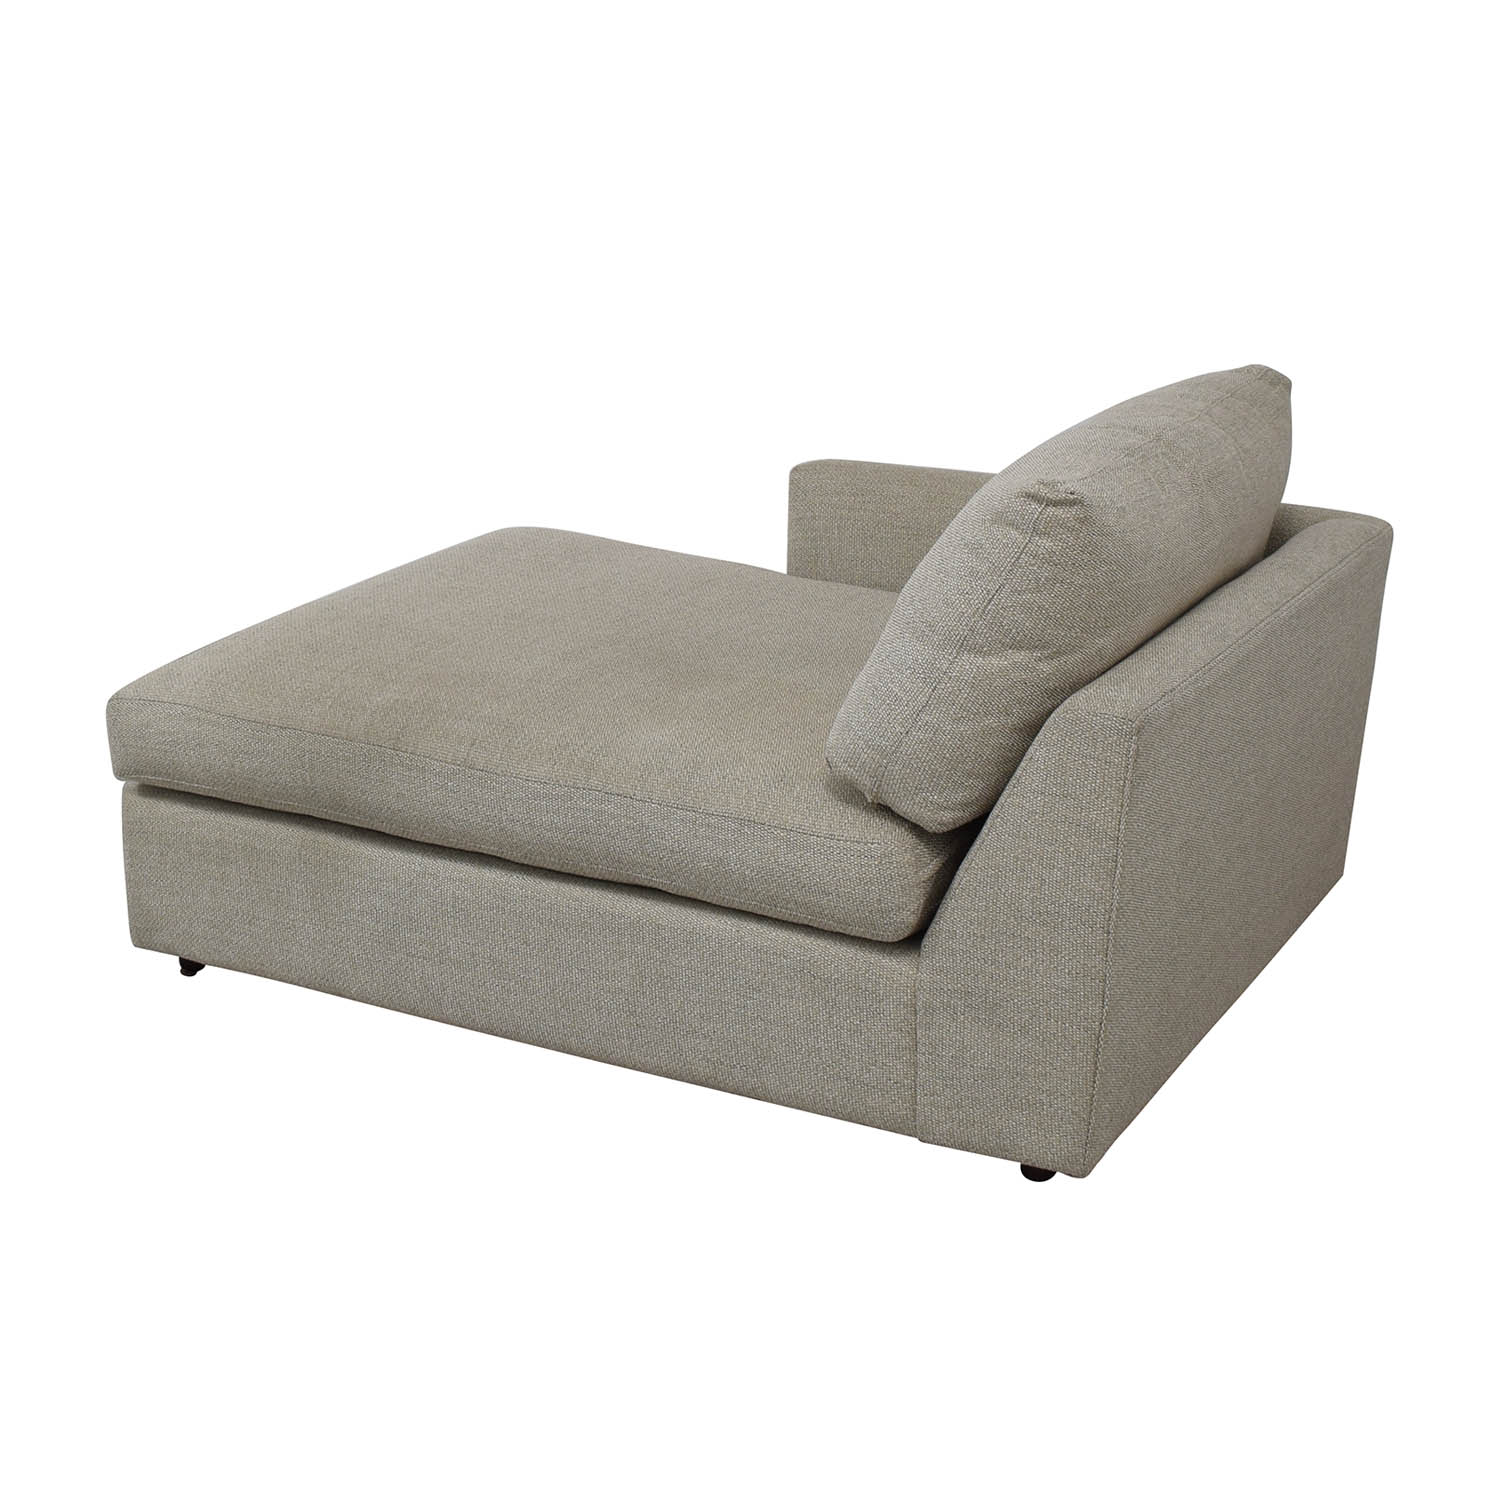 Crate & Barrel Crate & Barrel Lounge II Left Arm Chaise grey